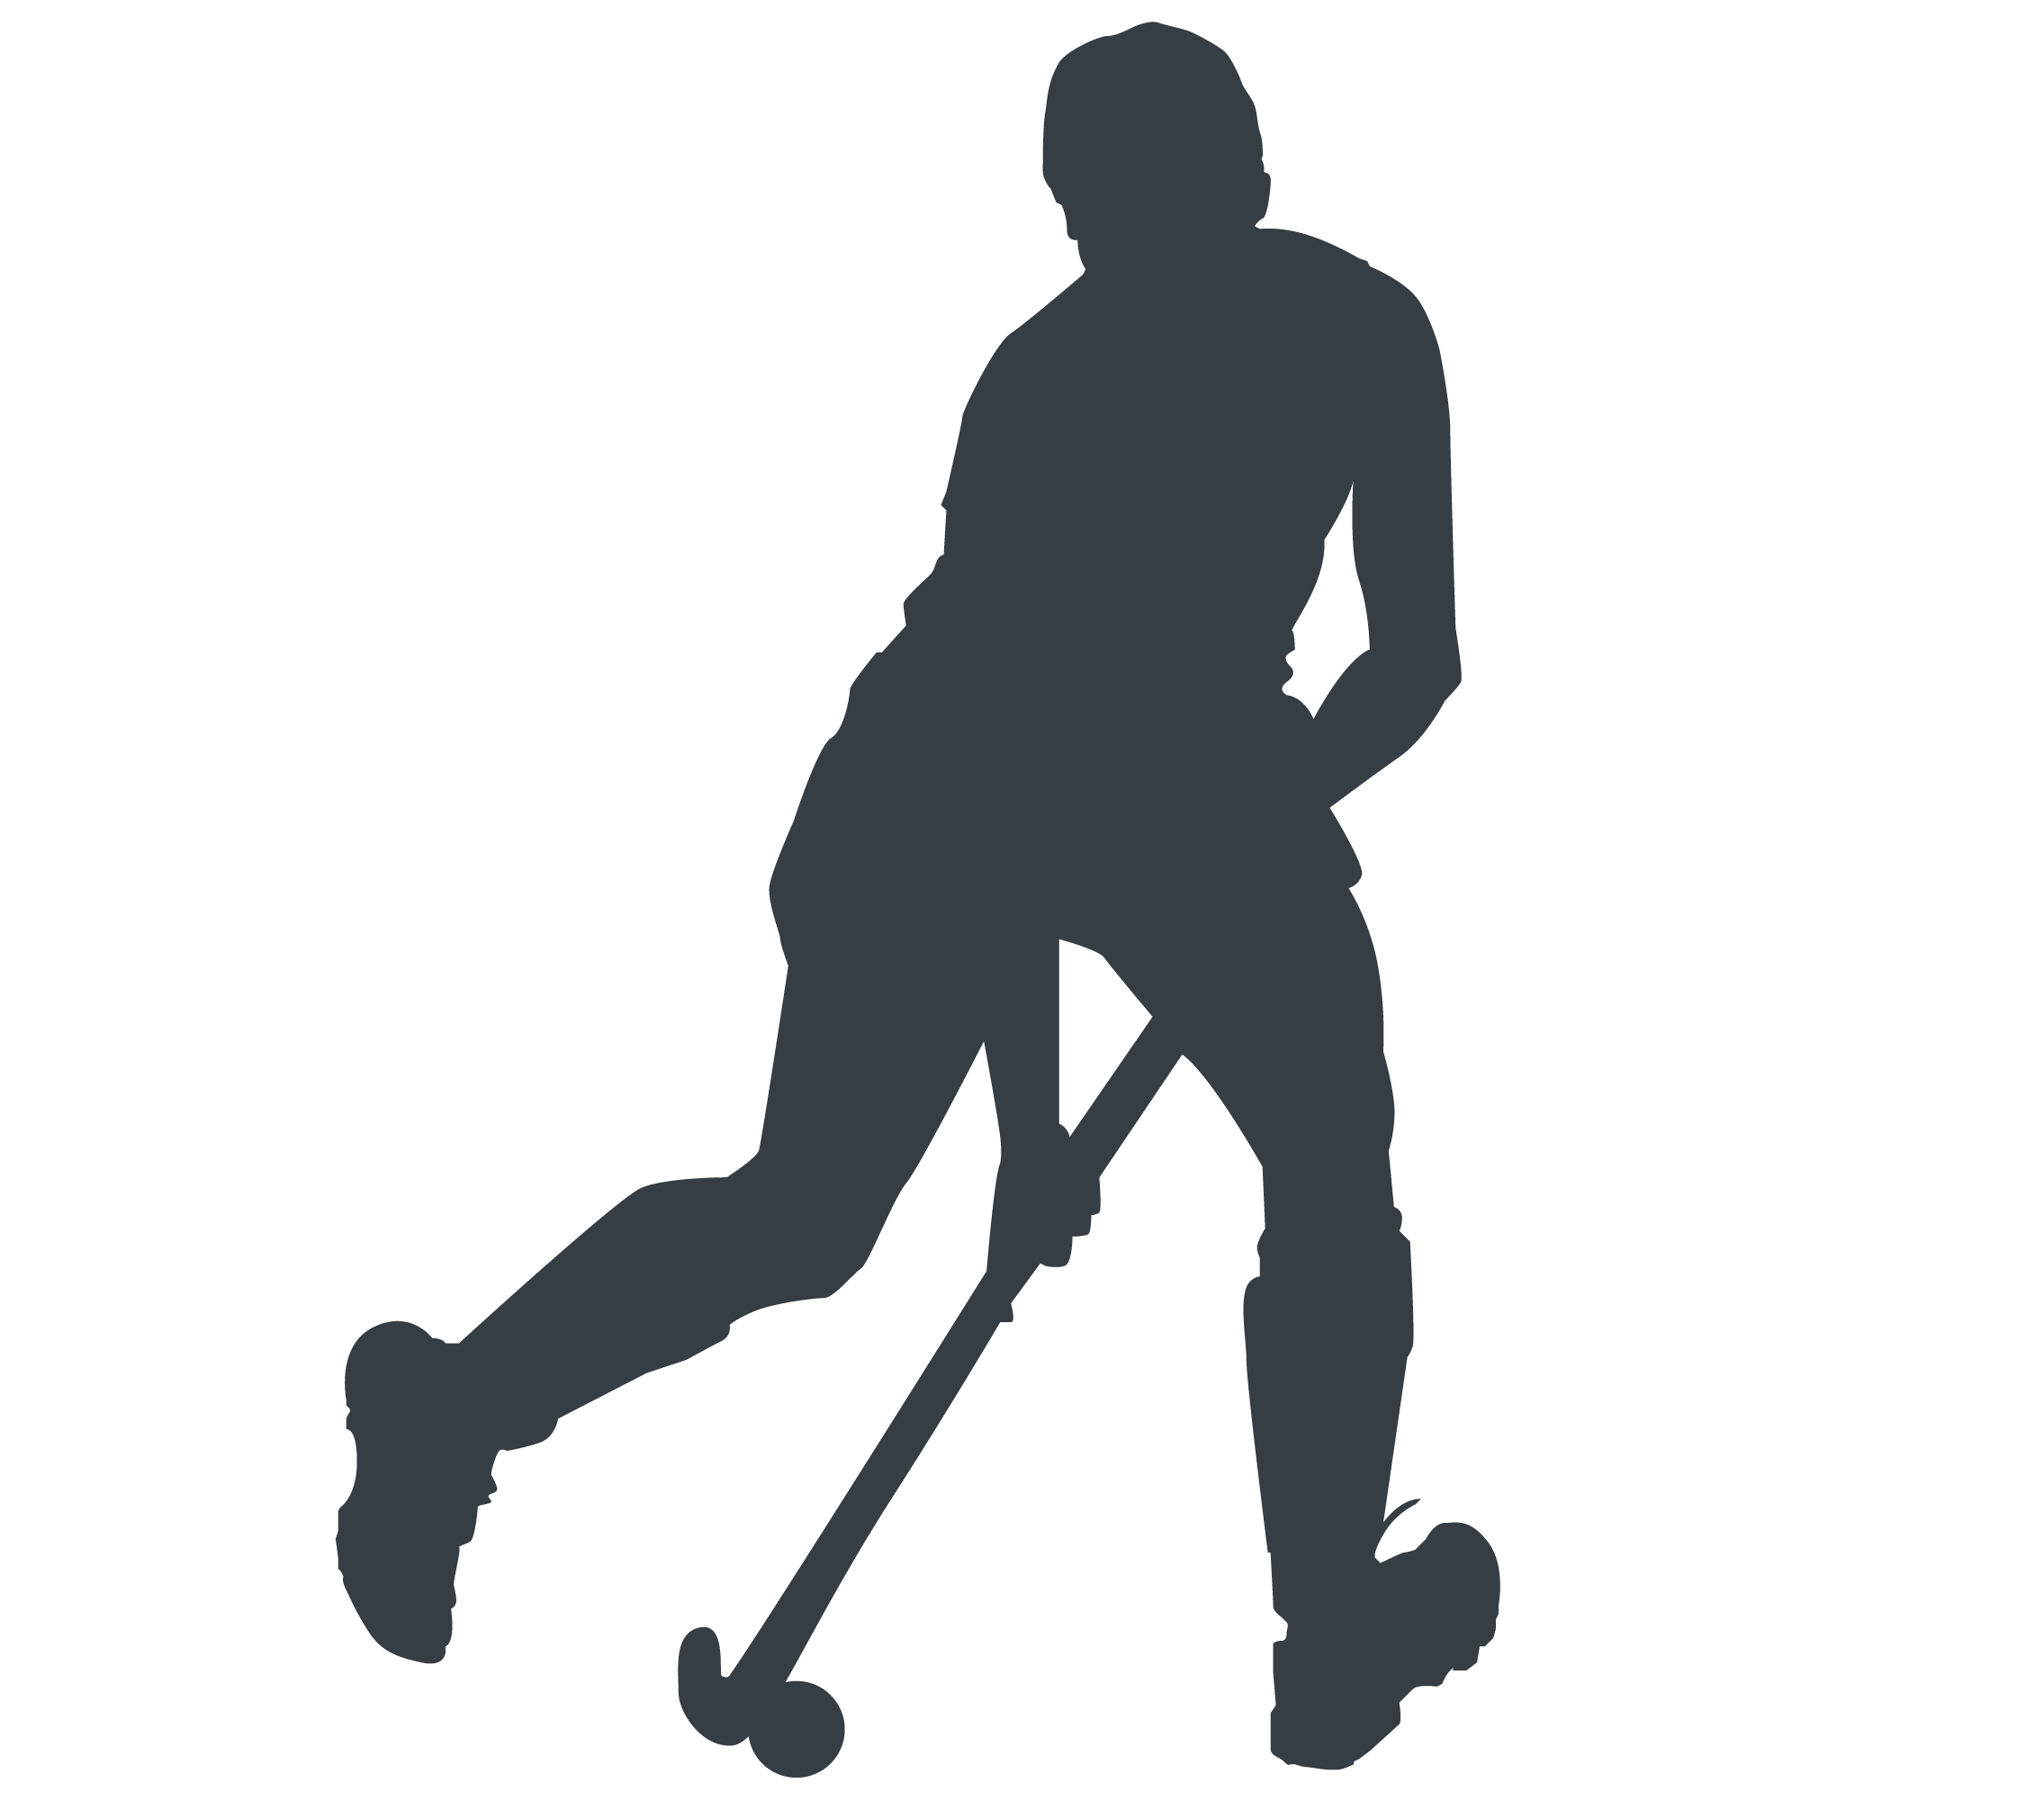 Field hockey PNG Images.